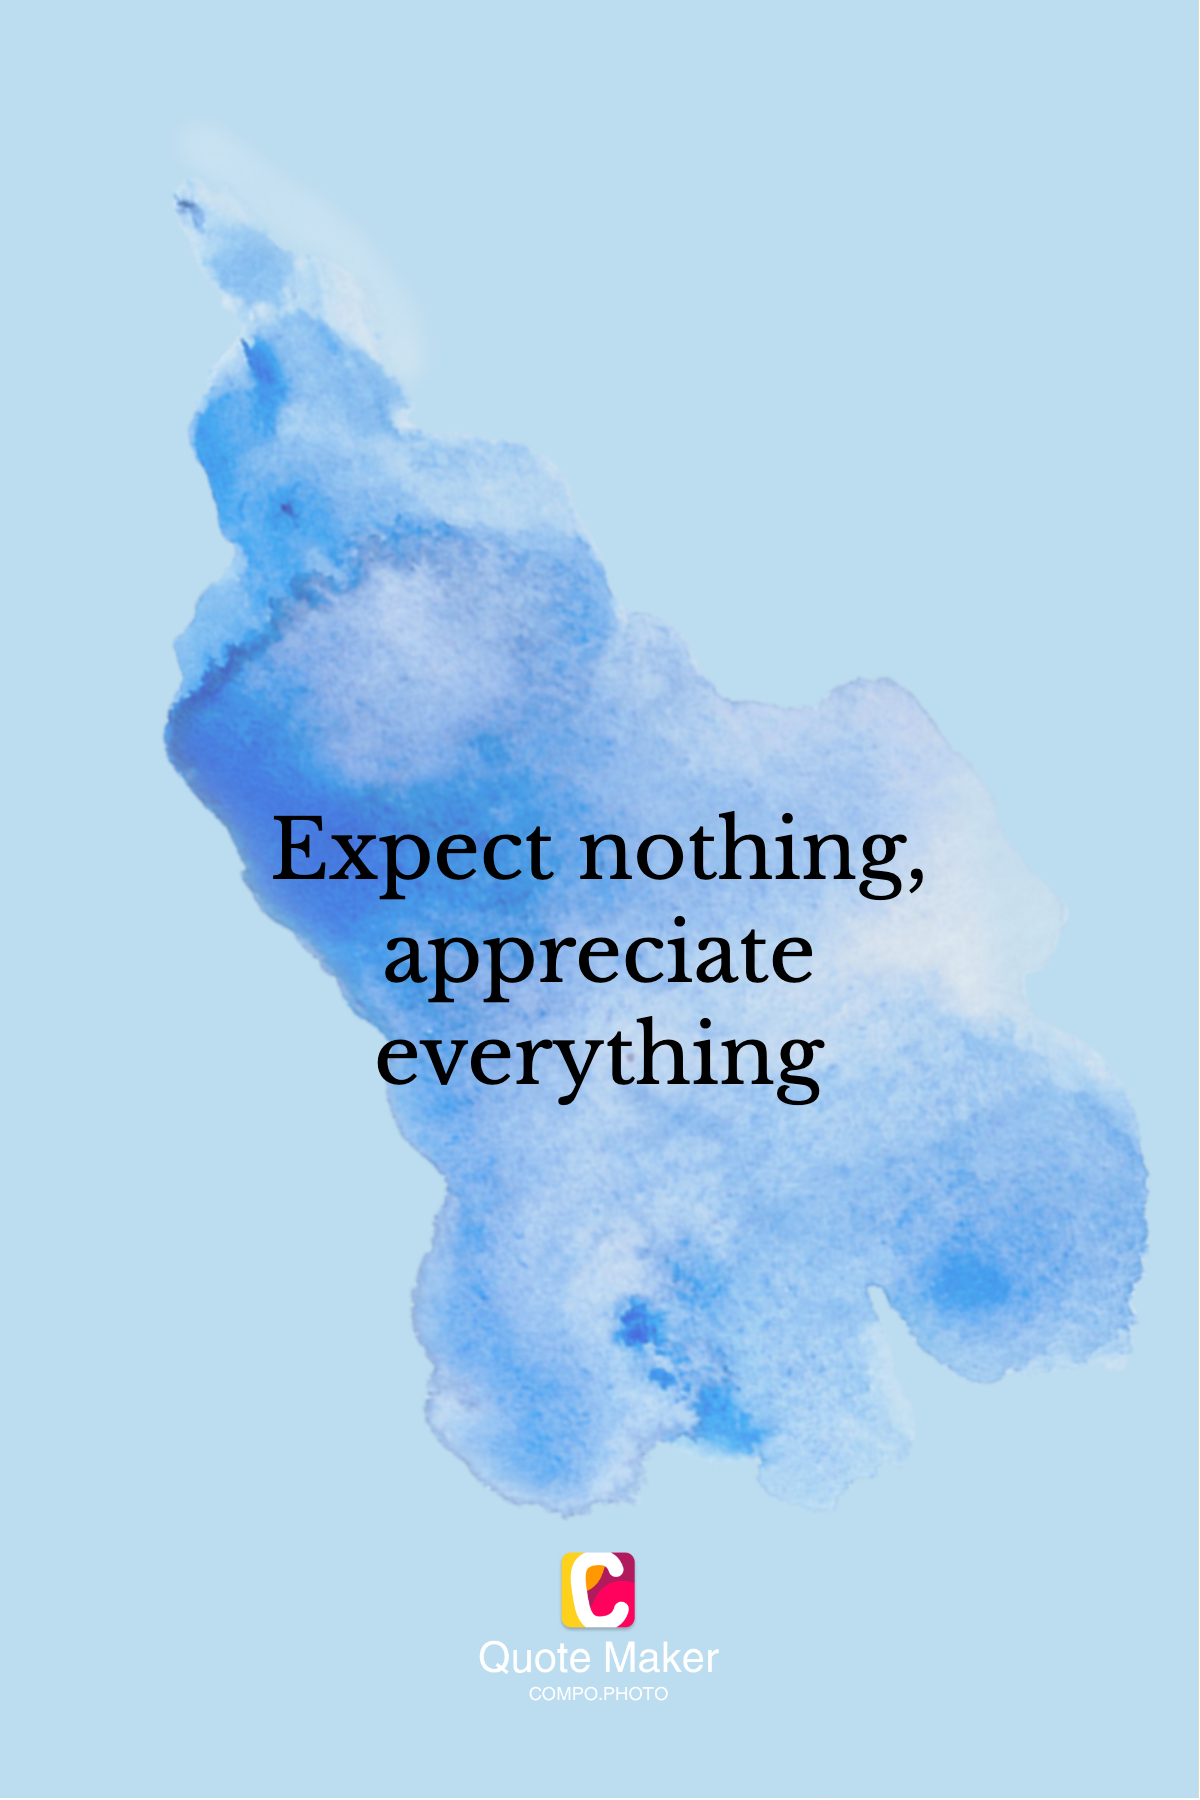 Inspirational Quote  Maker quotes, Inspirational quotes, Create